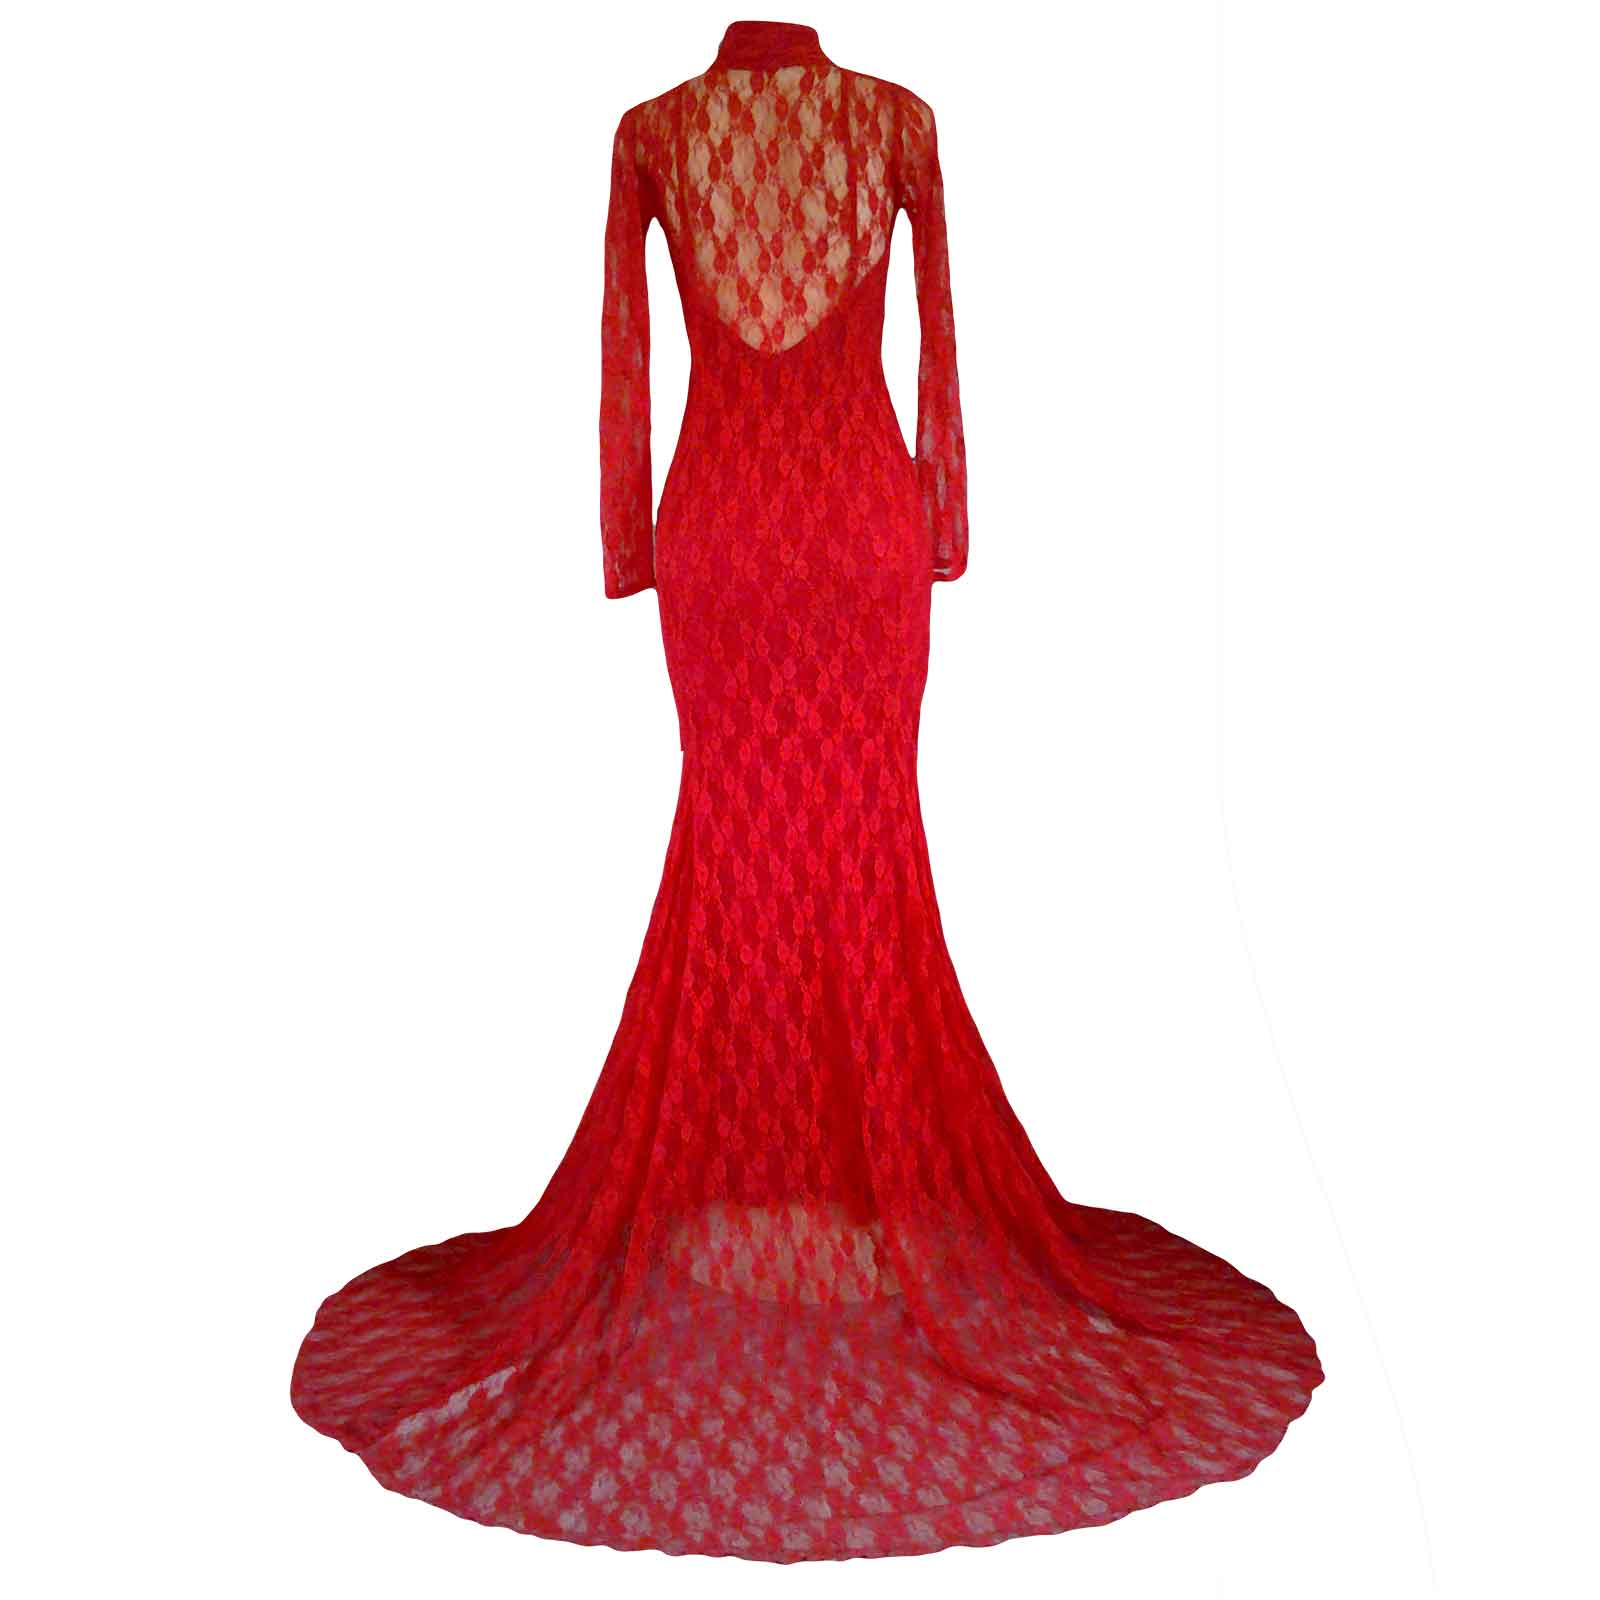 Red fully lace soft mermaid evening dress 2 red fully lace soft mermaid evening dress for a party, with a choker neckline, long sheer sleeves, low back with lace over it and a train.